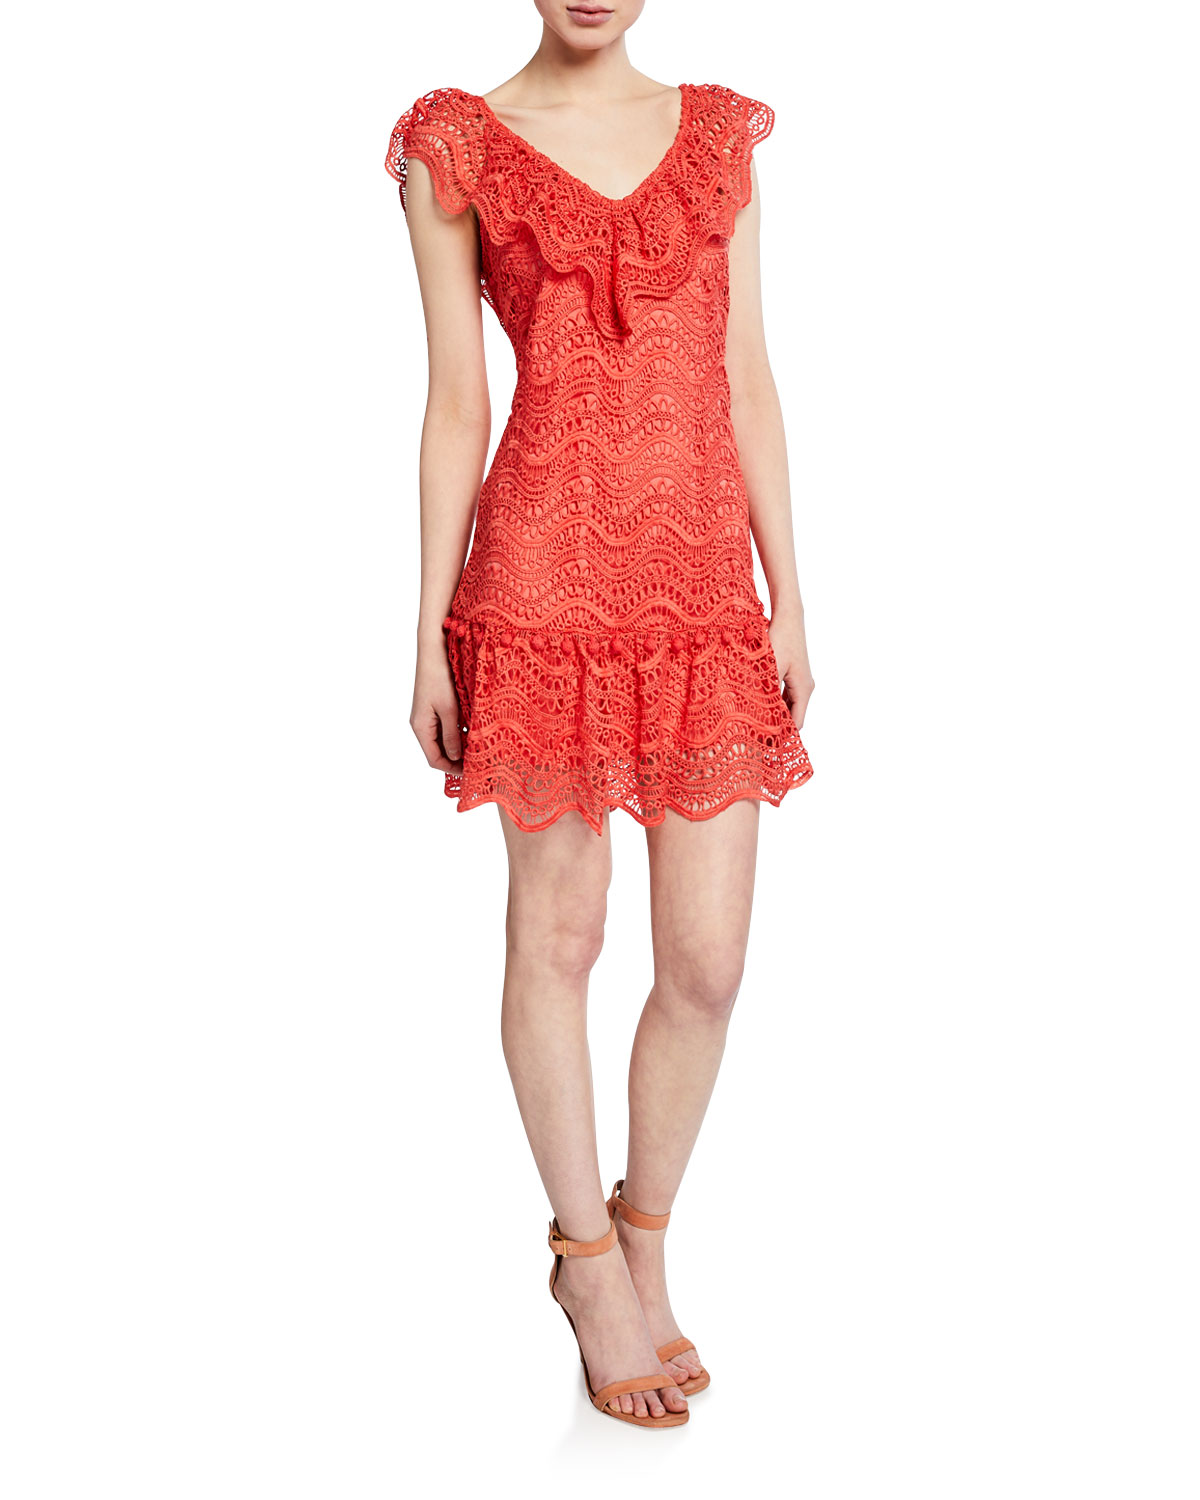 Saylor Fern V-Neck Sleeveless Mini Lace Dress